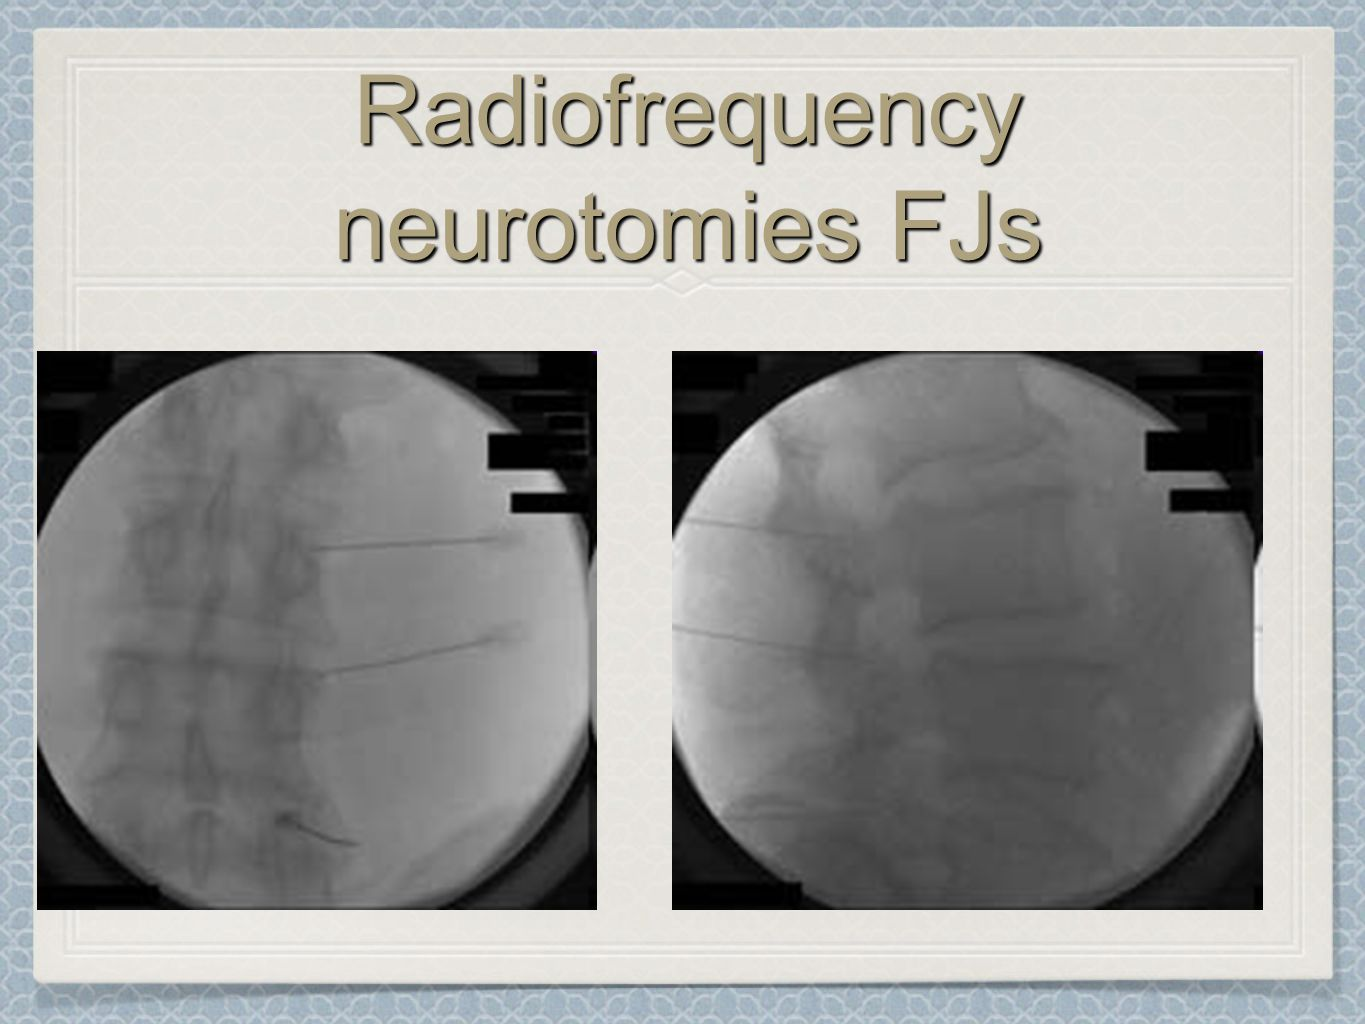 Radiofrequency neurotomies FJs